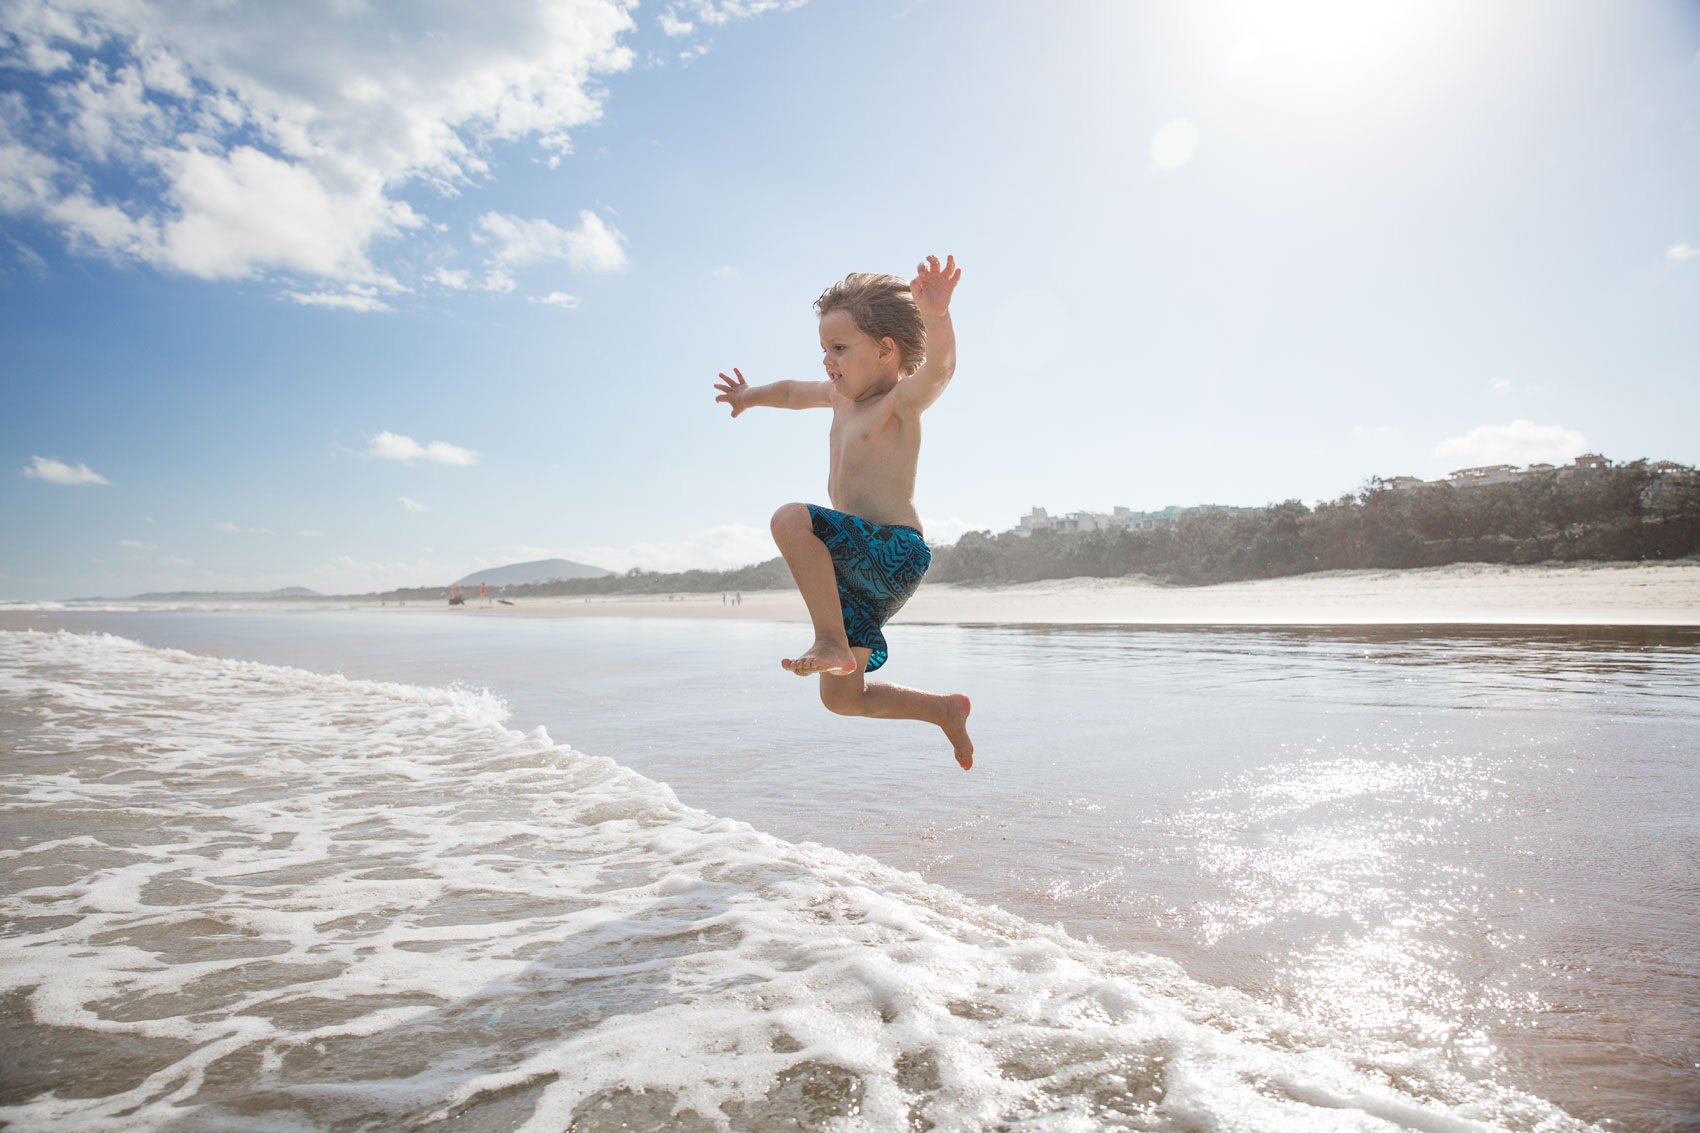 Young boy jumping into waves at Australian beach